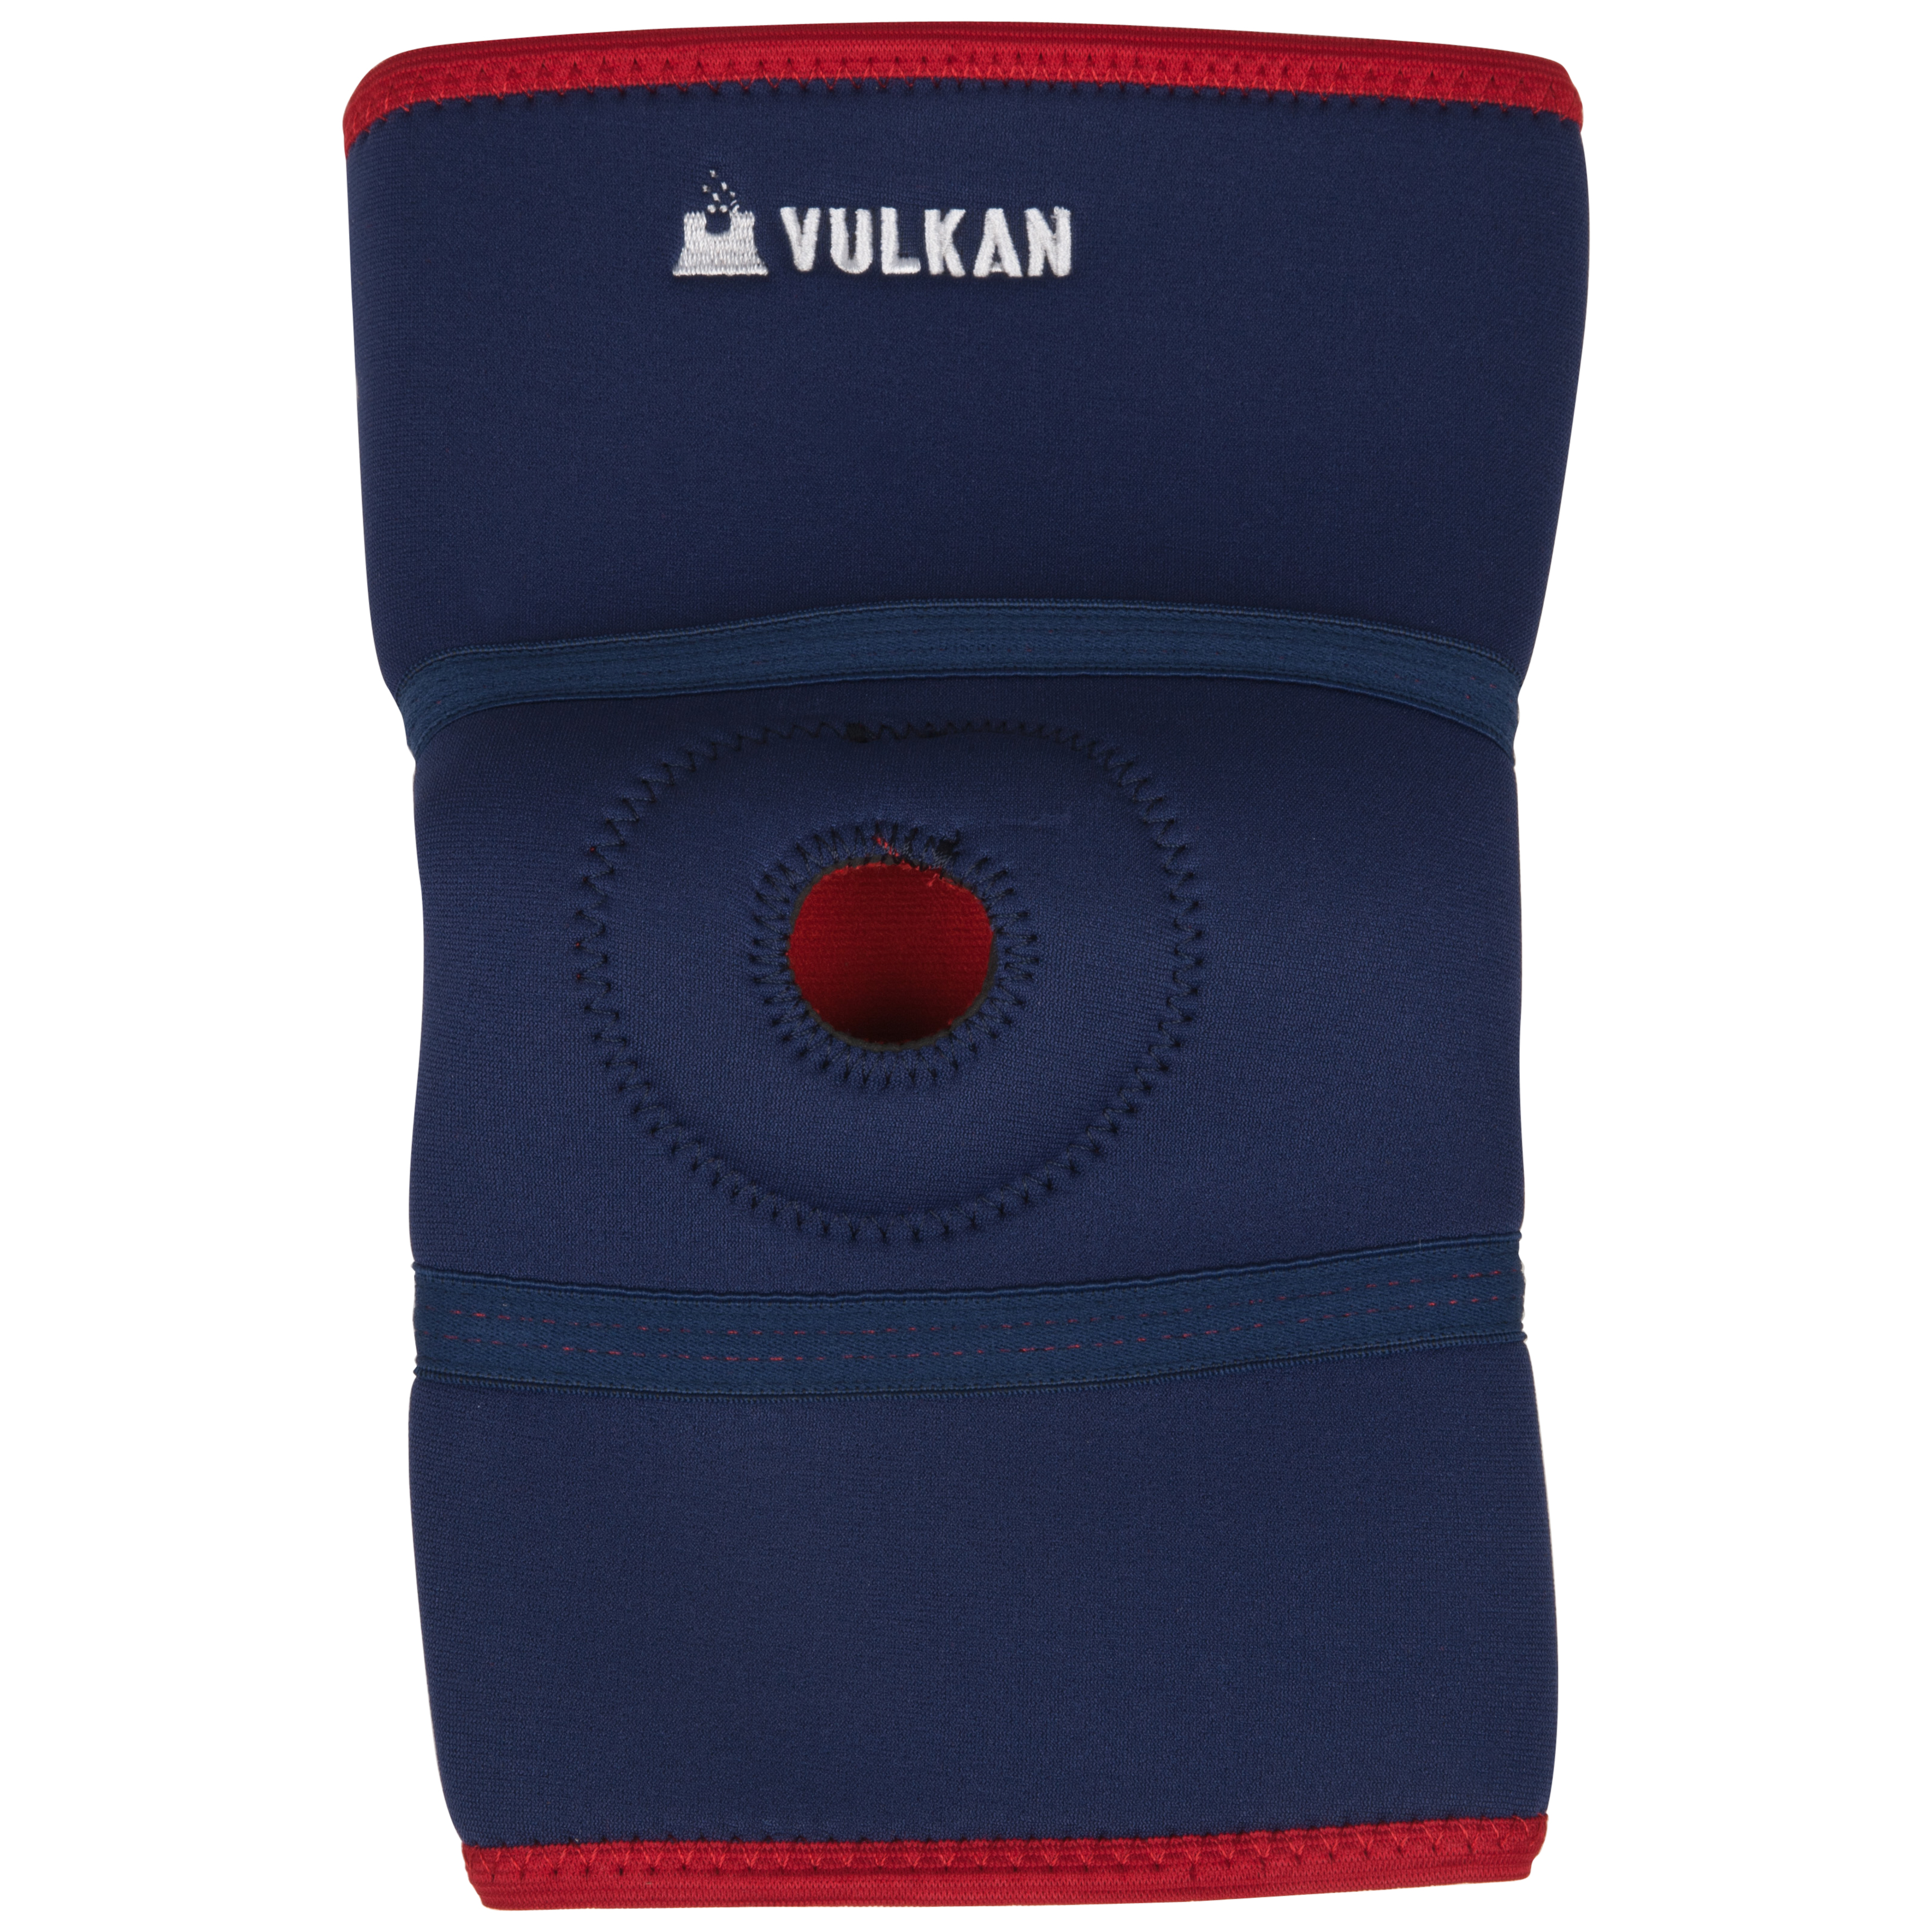 Vulkan Knee Free Patela Support - Blue/Red